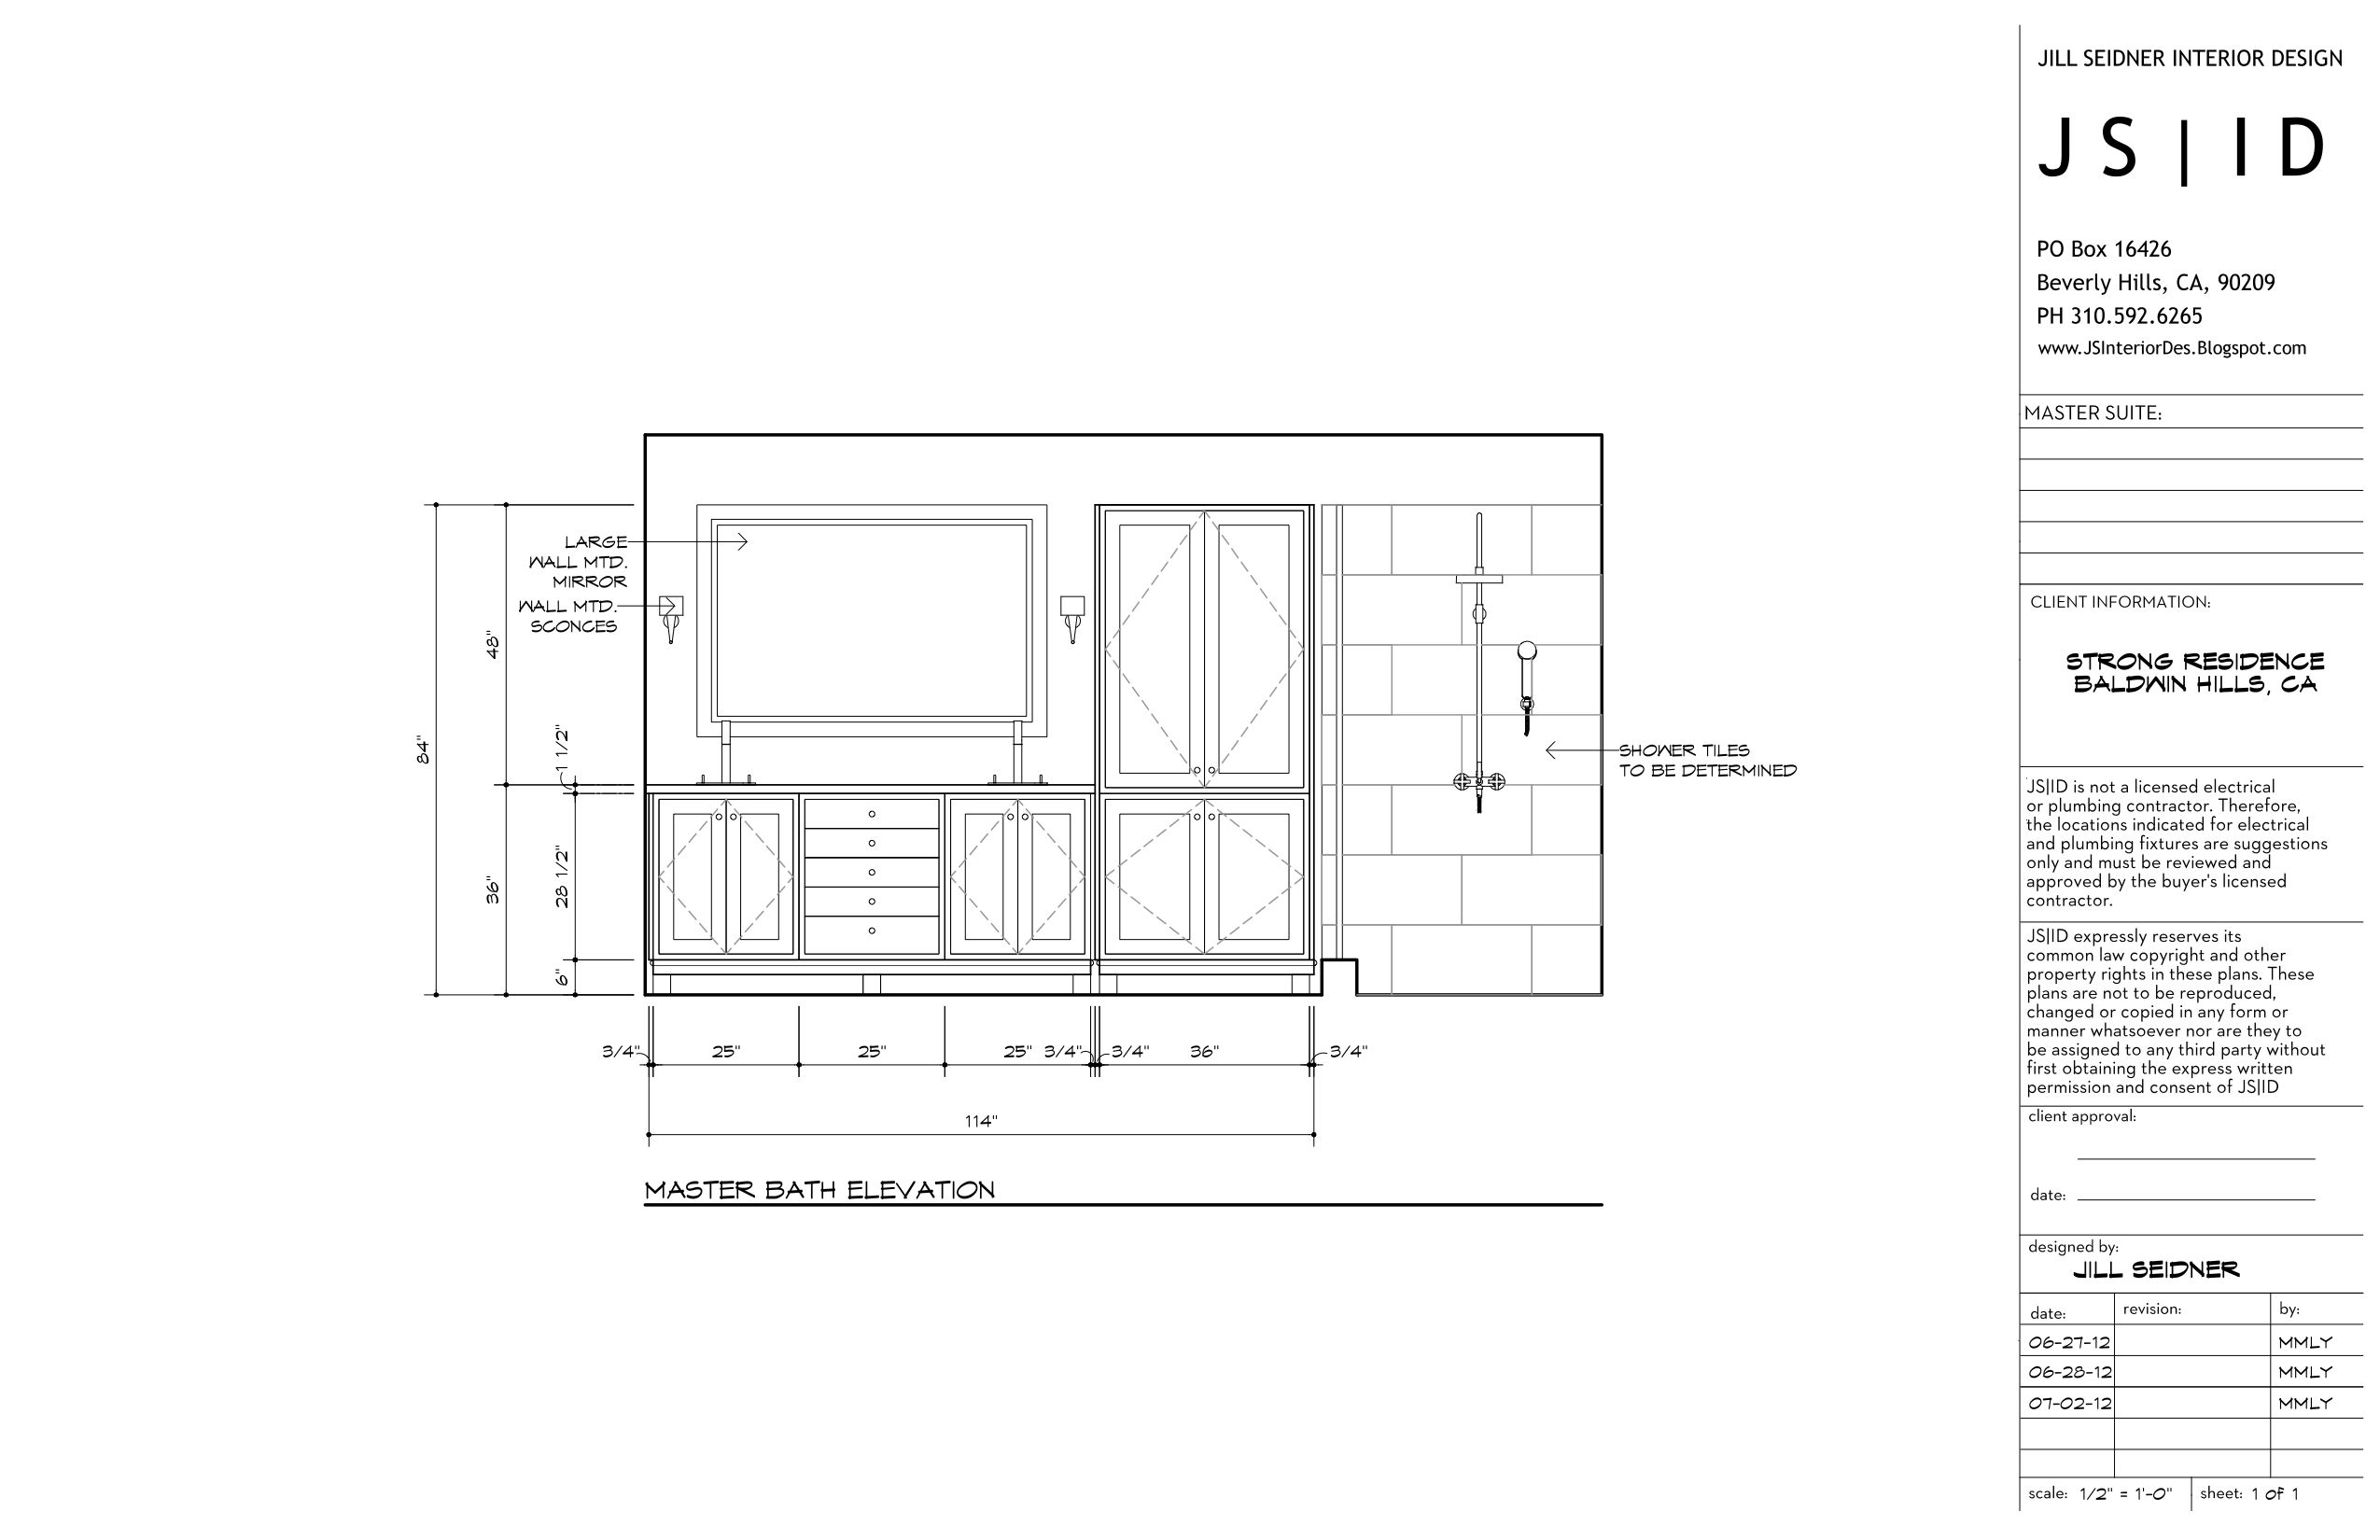 Baldwin hills ca residence master bathroom remodel detailed vanity design shower elevation Bathroom cad design online